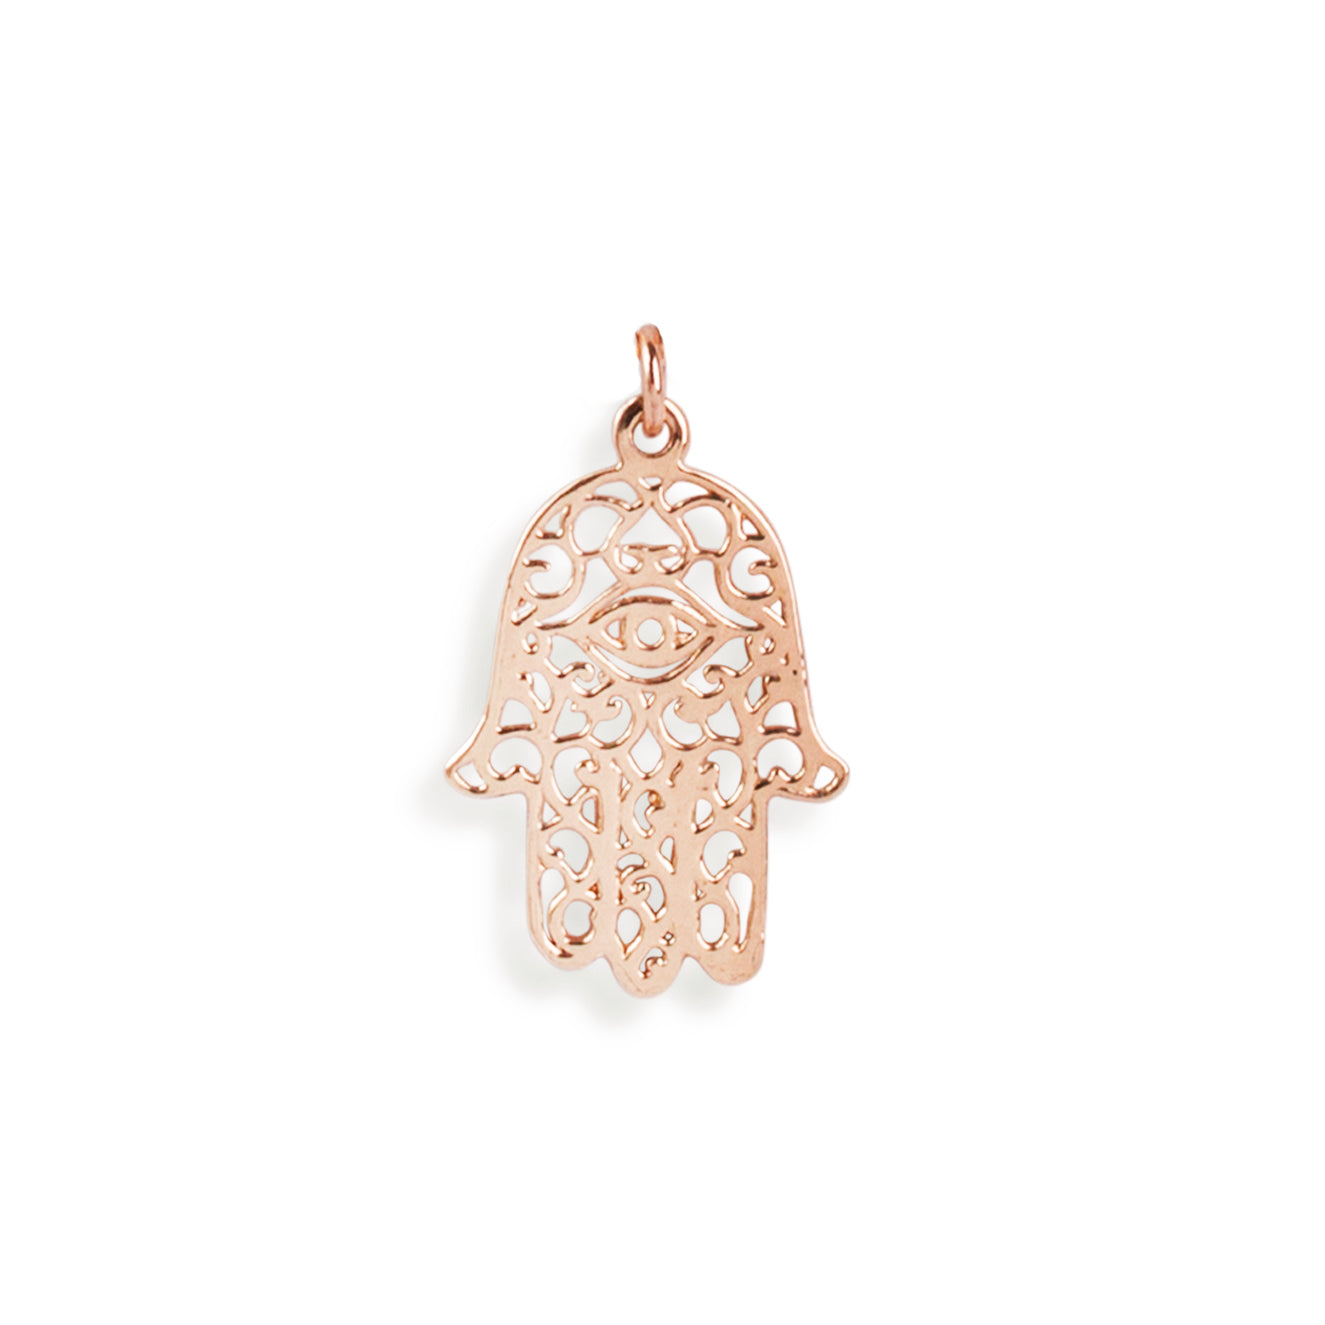 The Rose Gold Hamsa Hand Charm-Pendant-Black Betty Design